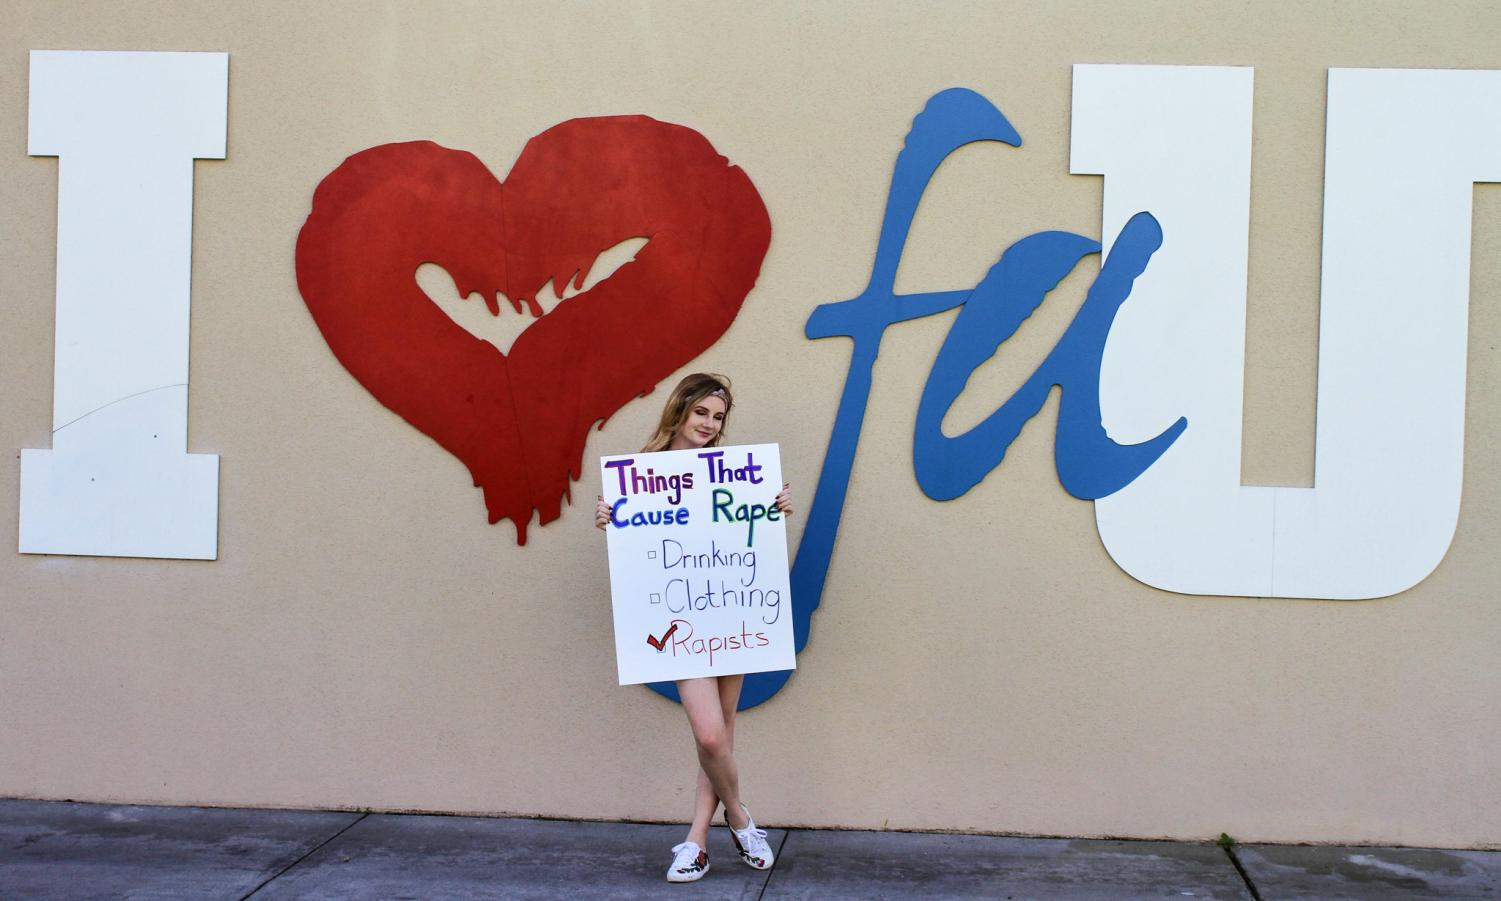 FAU freshman and business major April McPherson holds a sign during the spring 2018 Slut Walk, an event promoting consent and body positivity. The message on her sign is a core belief of Flip the Script — a scientifically proven sexual assault prevention course only available at FAU in the U.S. Photo by Violet Castano